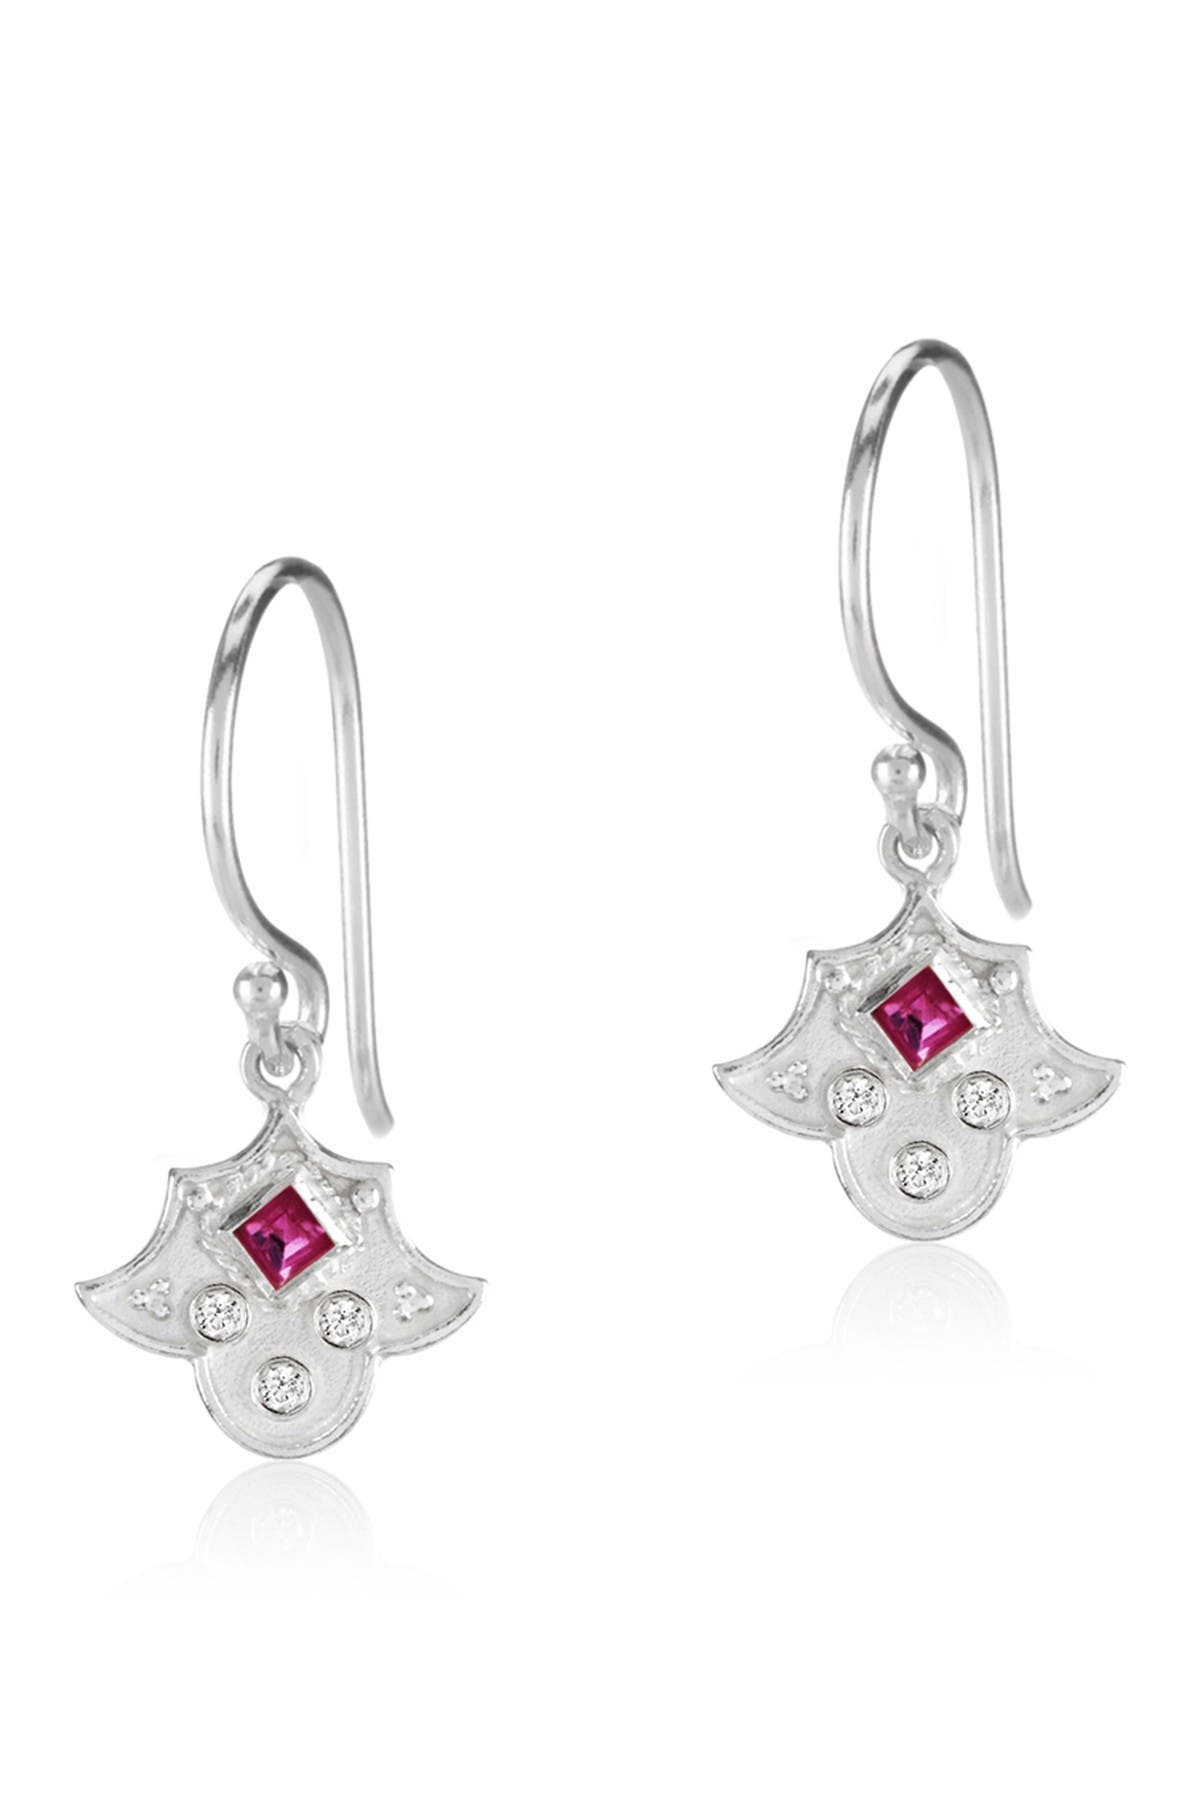 Image of LEGEND AMRAPALI SILVER Sterling Silver Heritage Amulet Pink Ruby & Diamond Dangle Earrings